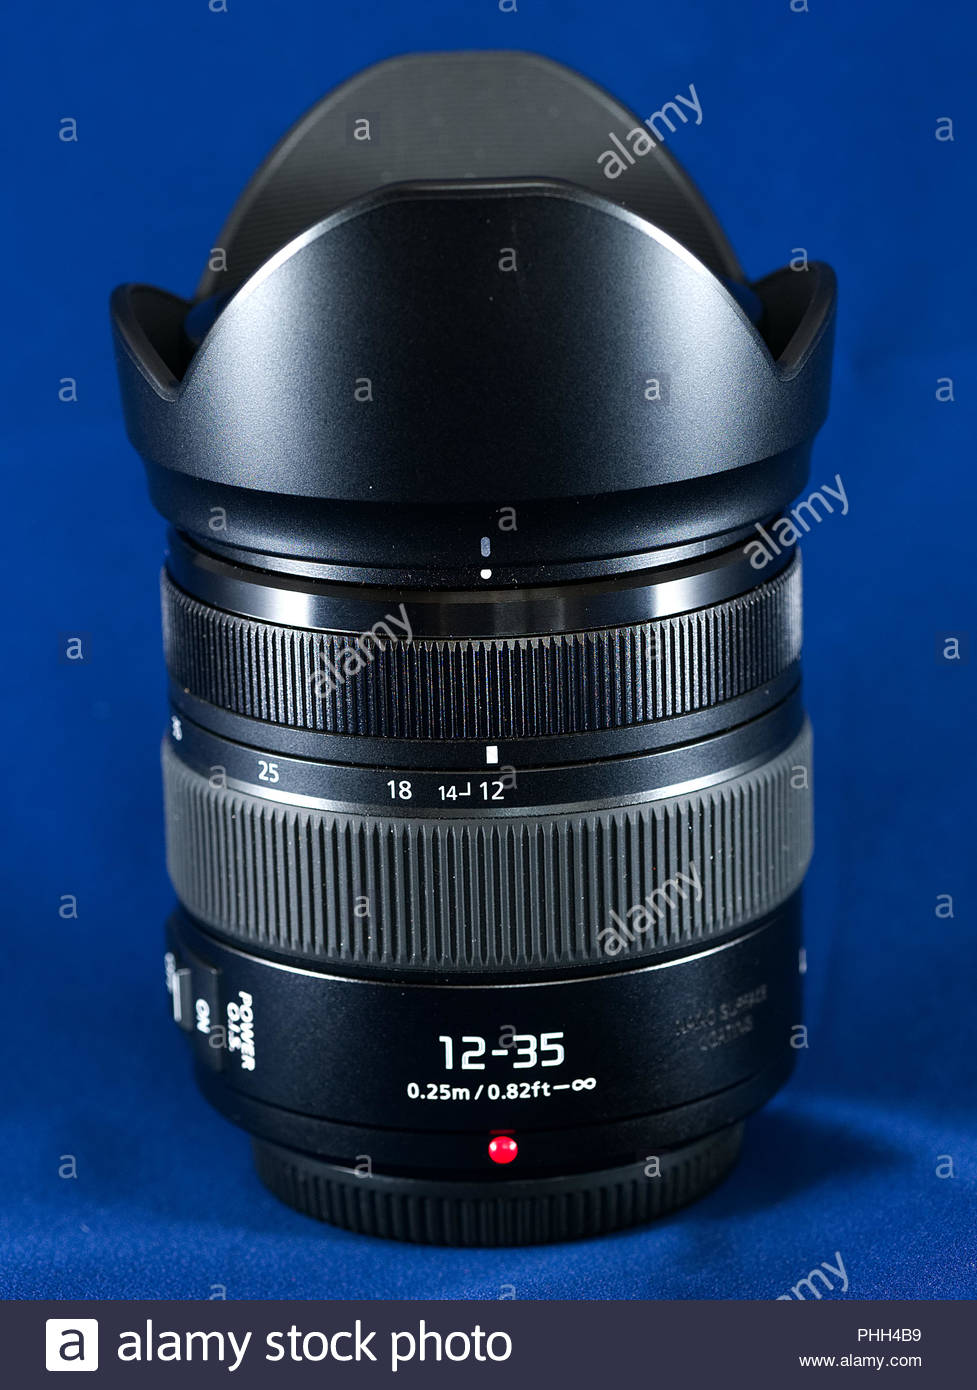 A Panasonic 12 - 35mm f2.8 standard zoom lens for micro four thirds lumix cameras - Stock Image